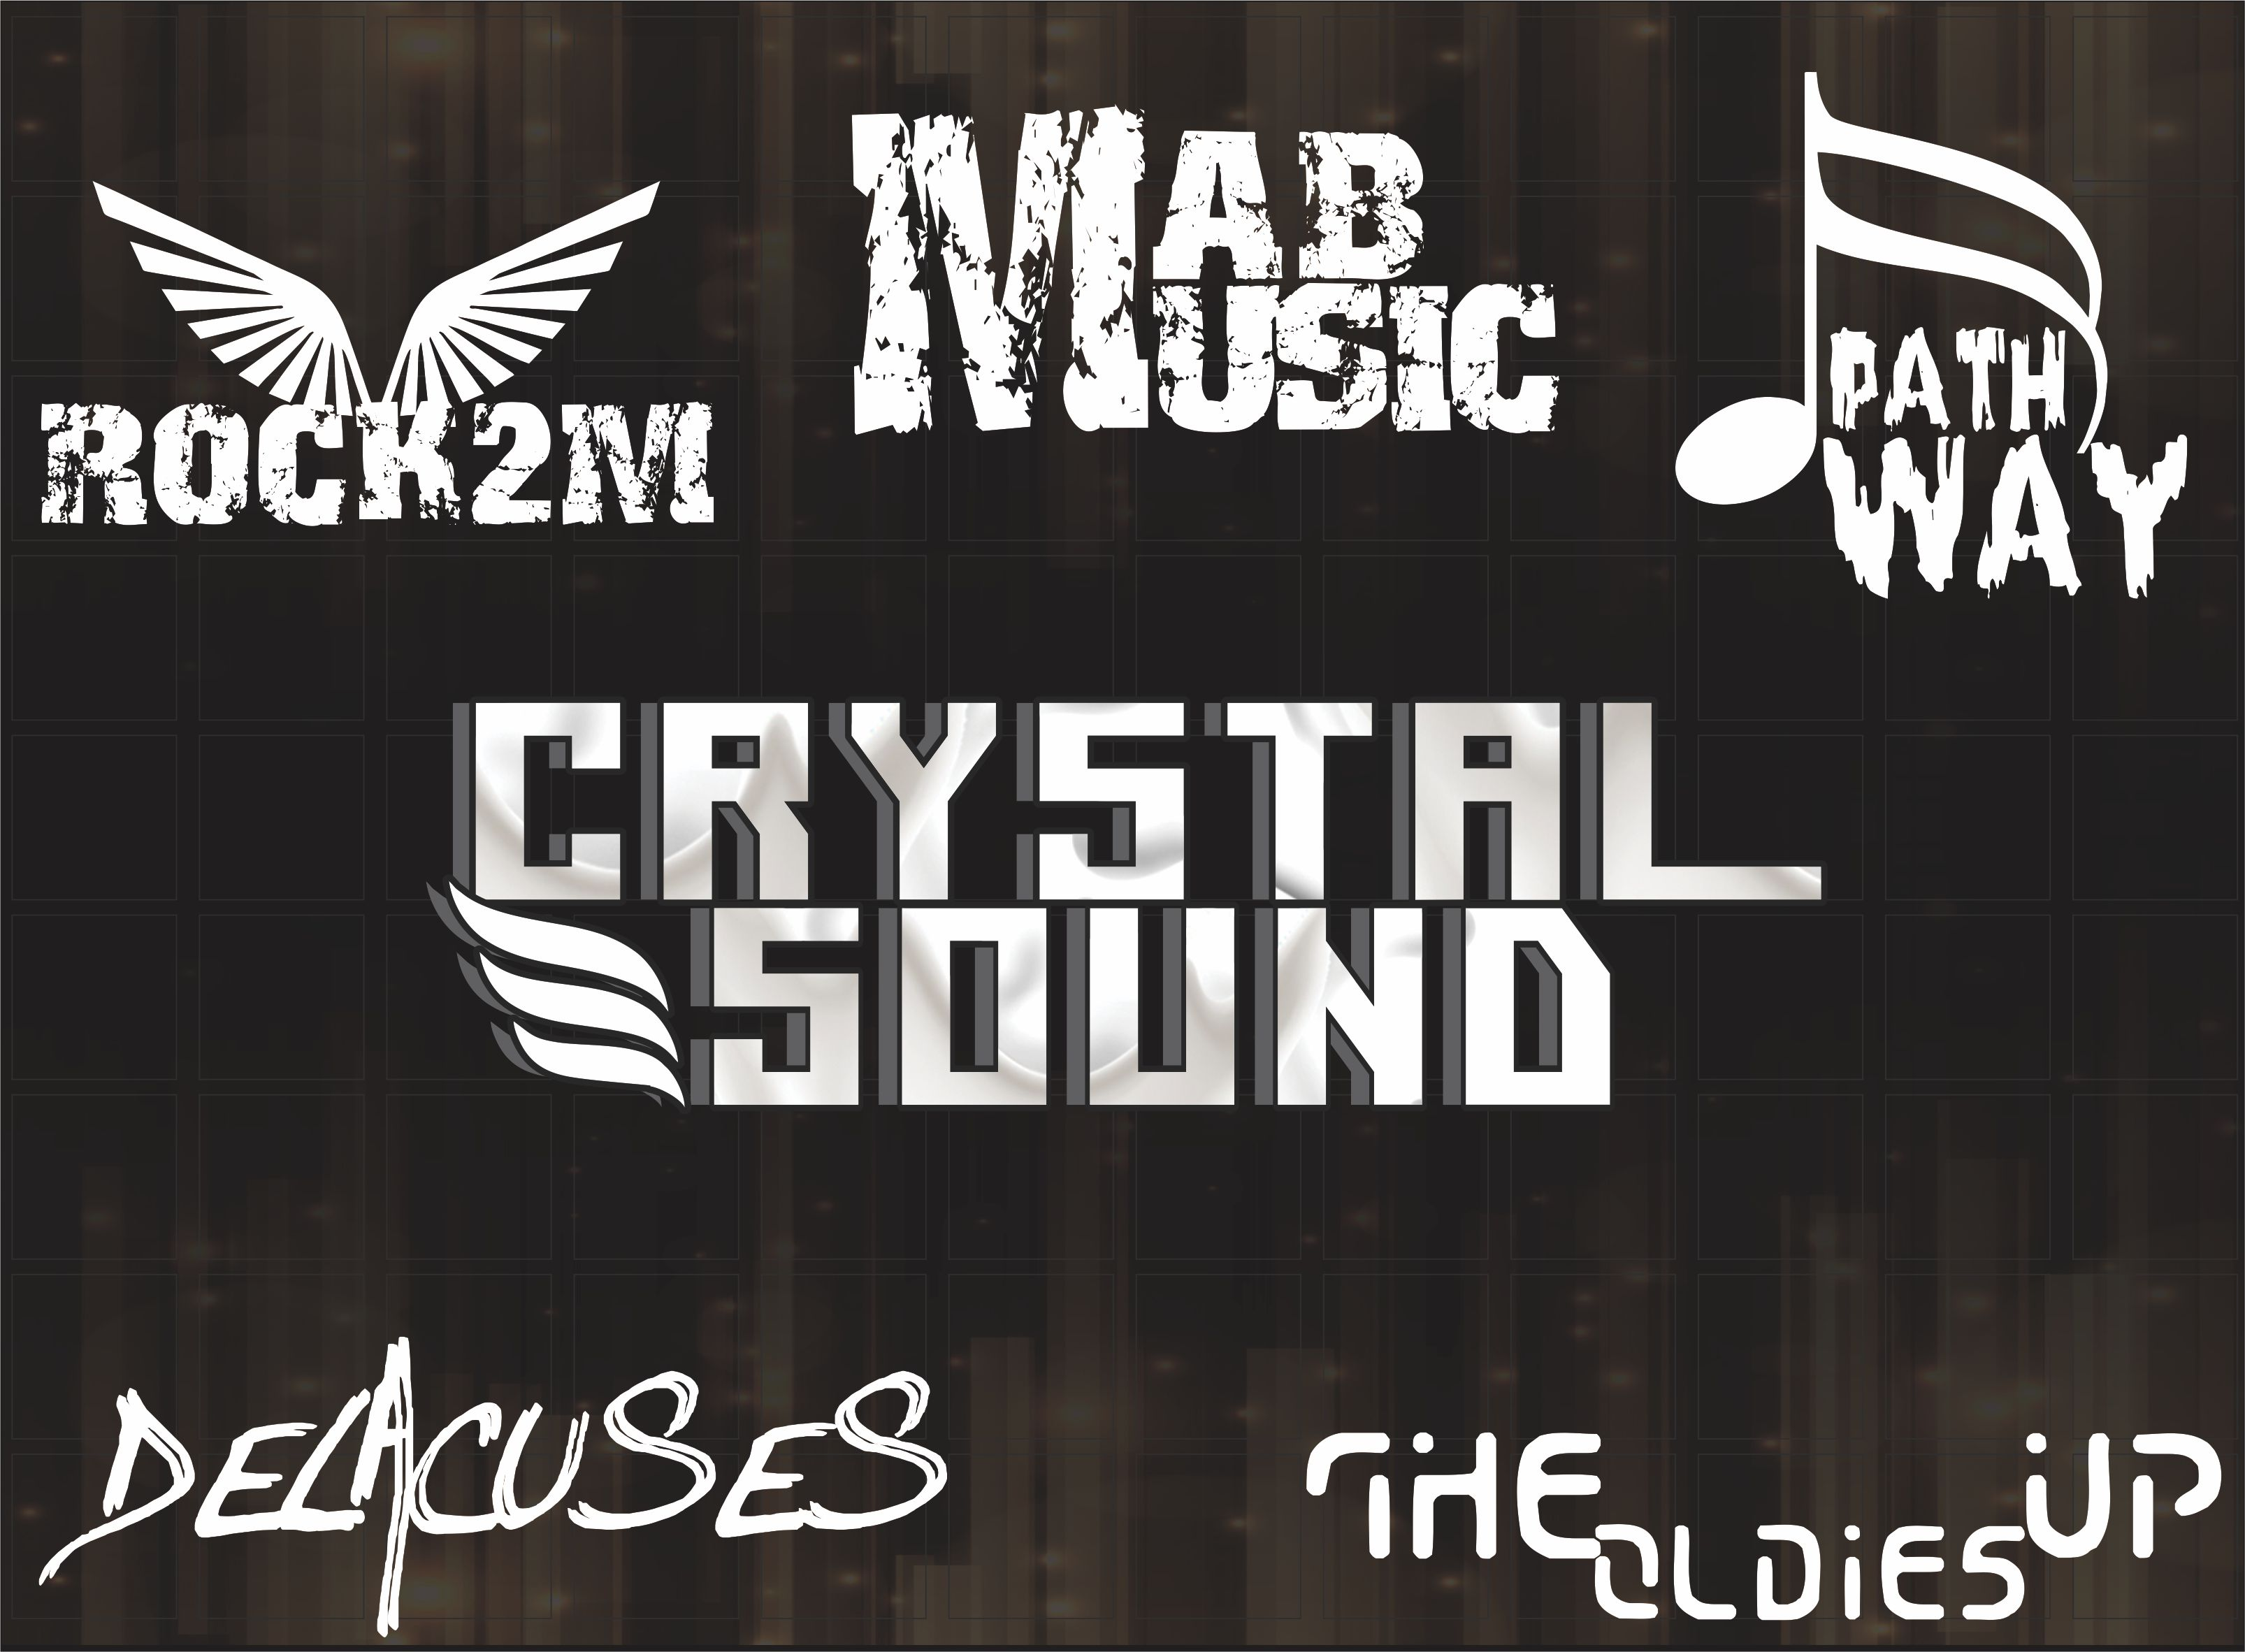 Order for any design on music e.g dj logo,  banner,  producer,  flyer,  album and so on